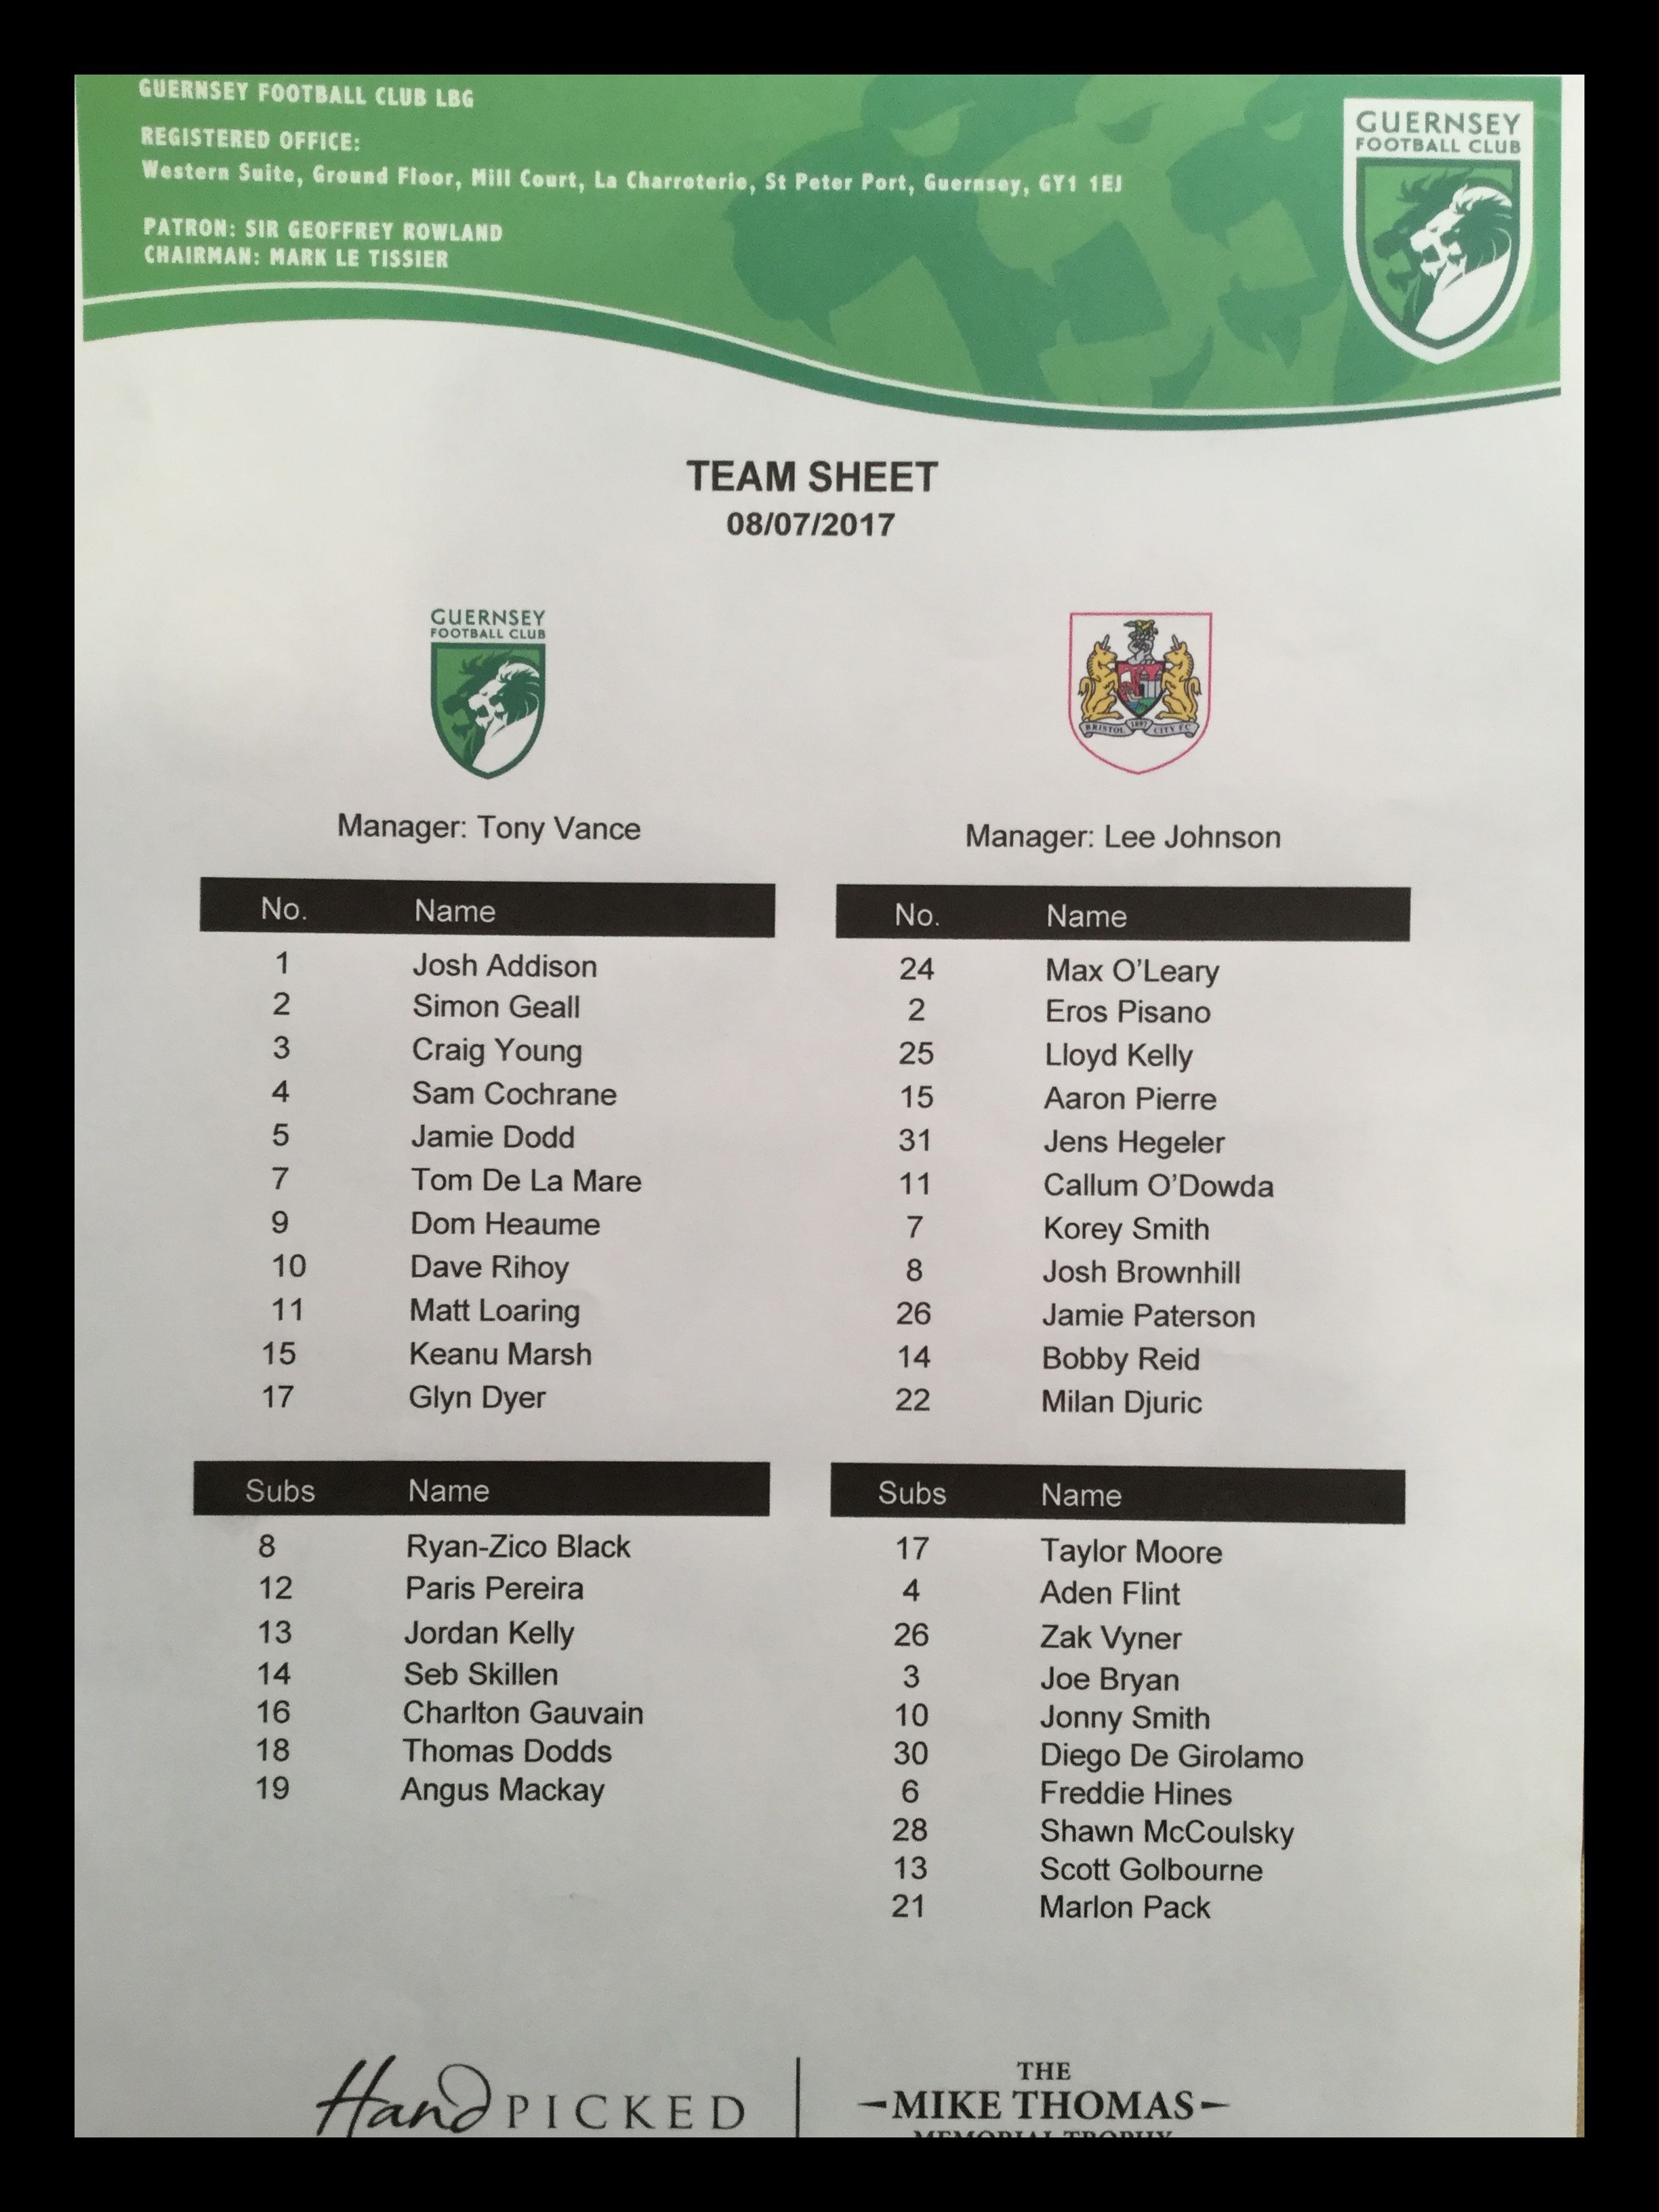 Guernsey v Bristol City 08-07-17 Team Sheet